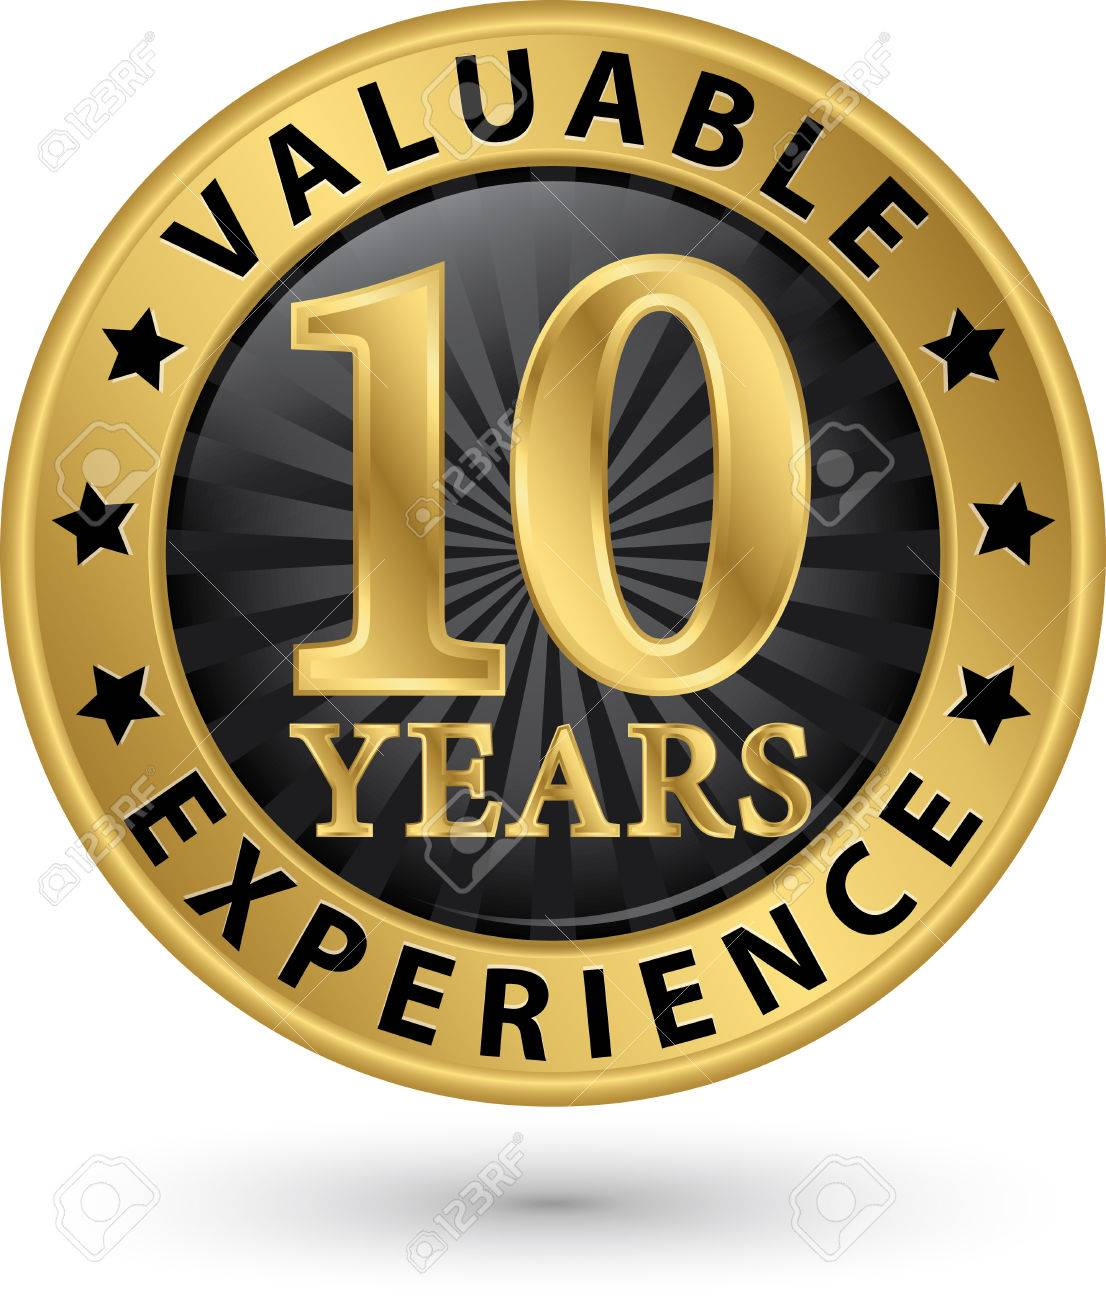 years valuable experience gold label vector illustration 10 years valuable experience gold label vector illustration stock vector 33009663